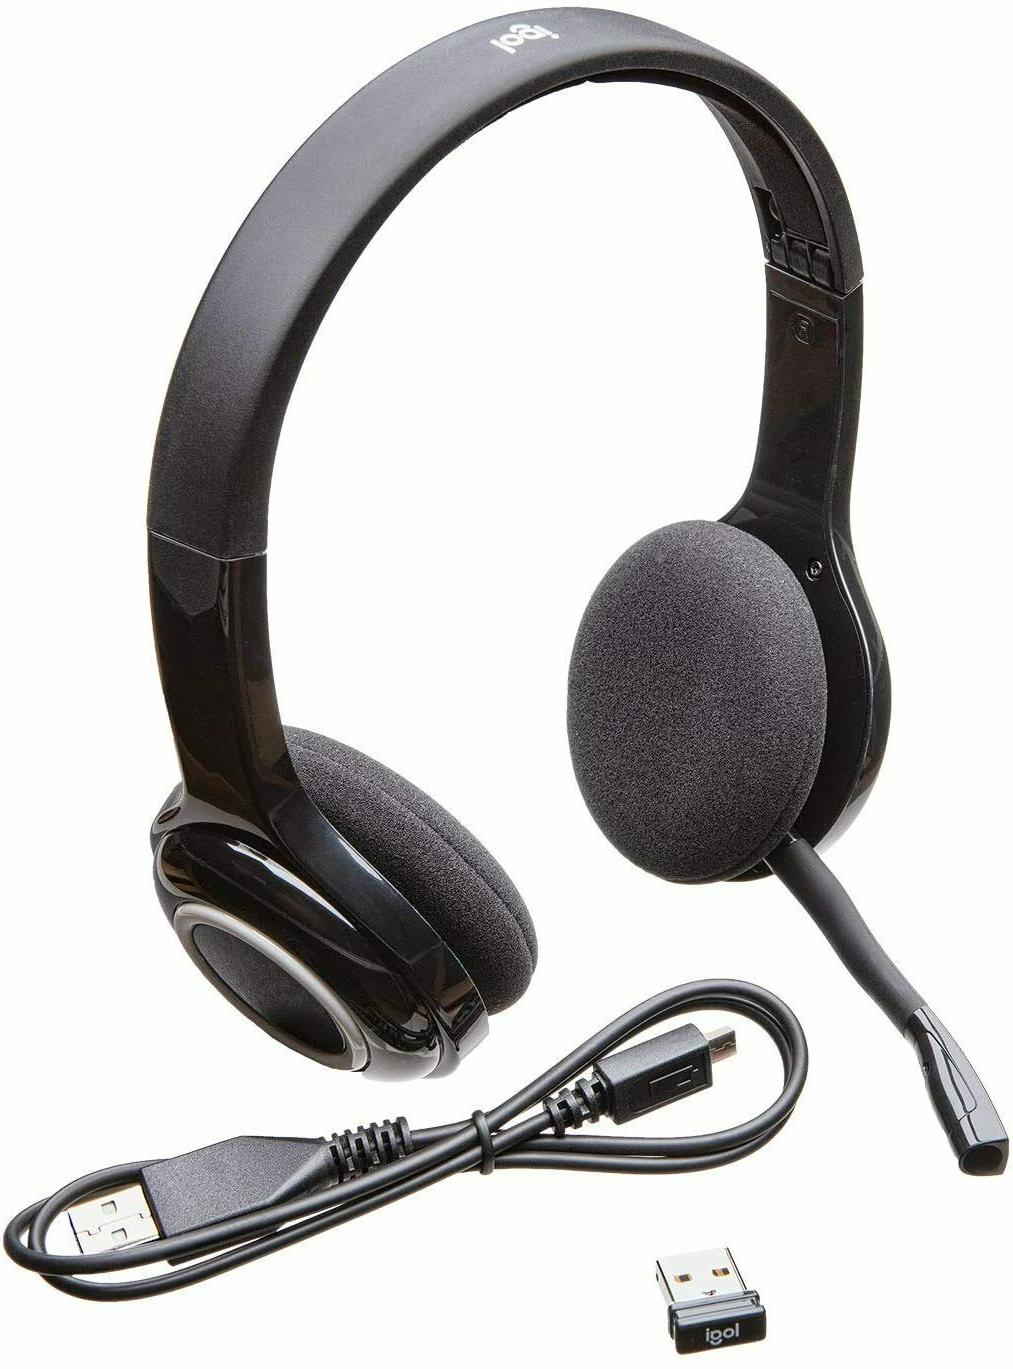 Logitech H600 Wireless Noise Mic, Controls, BRAND